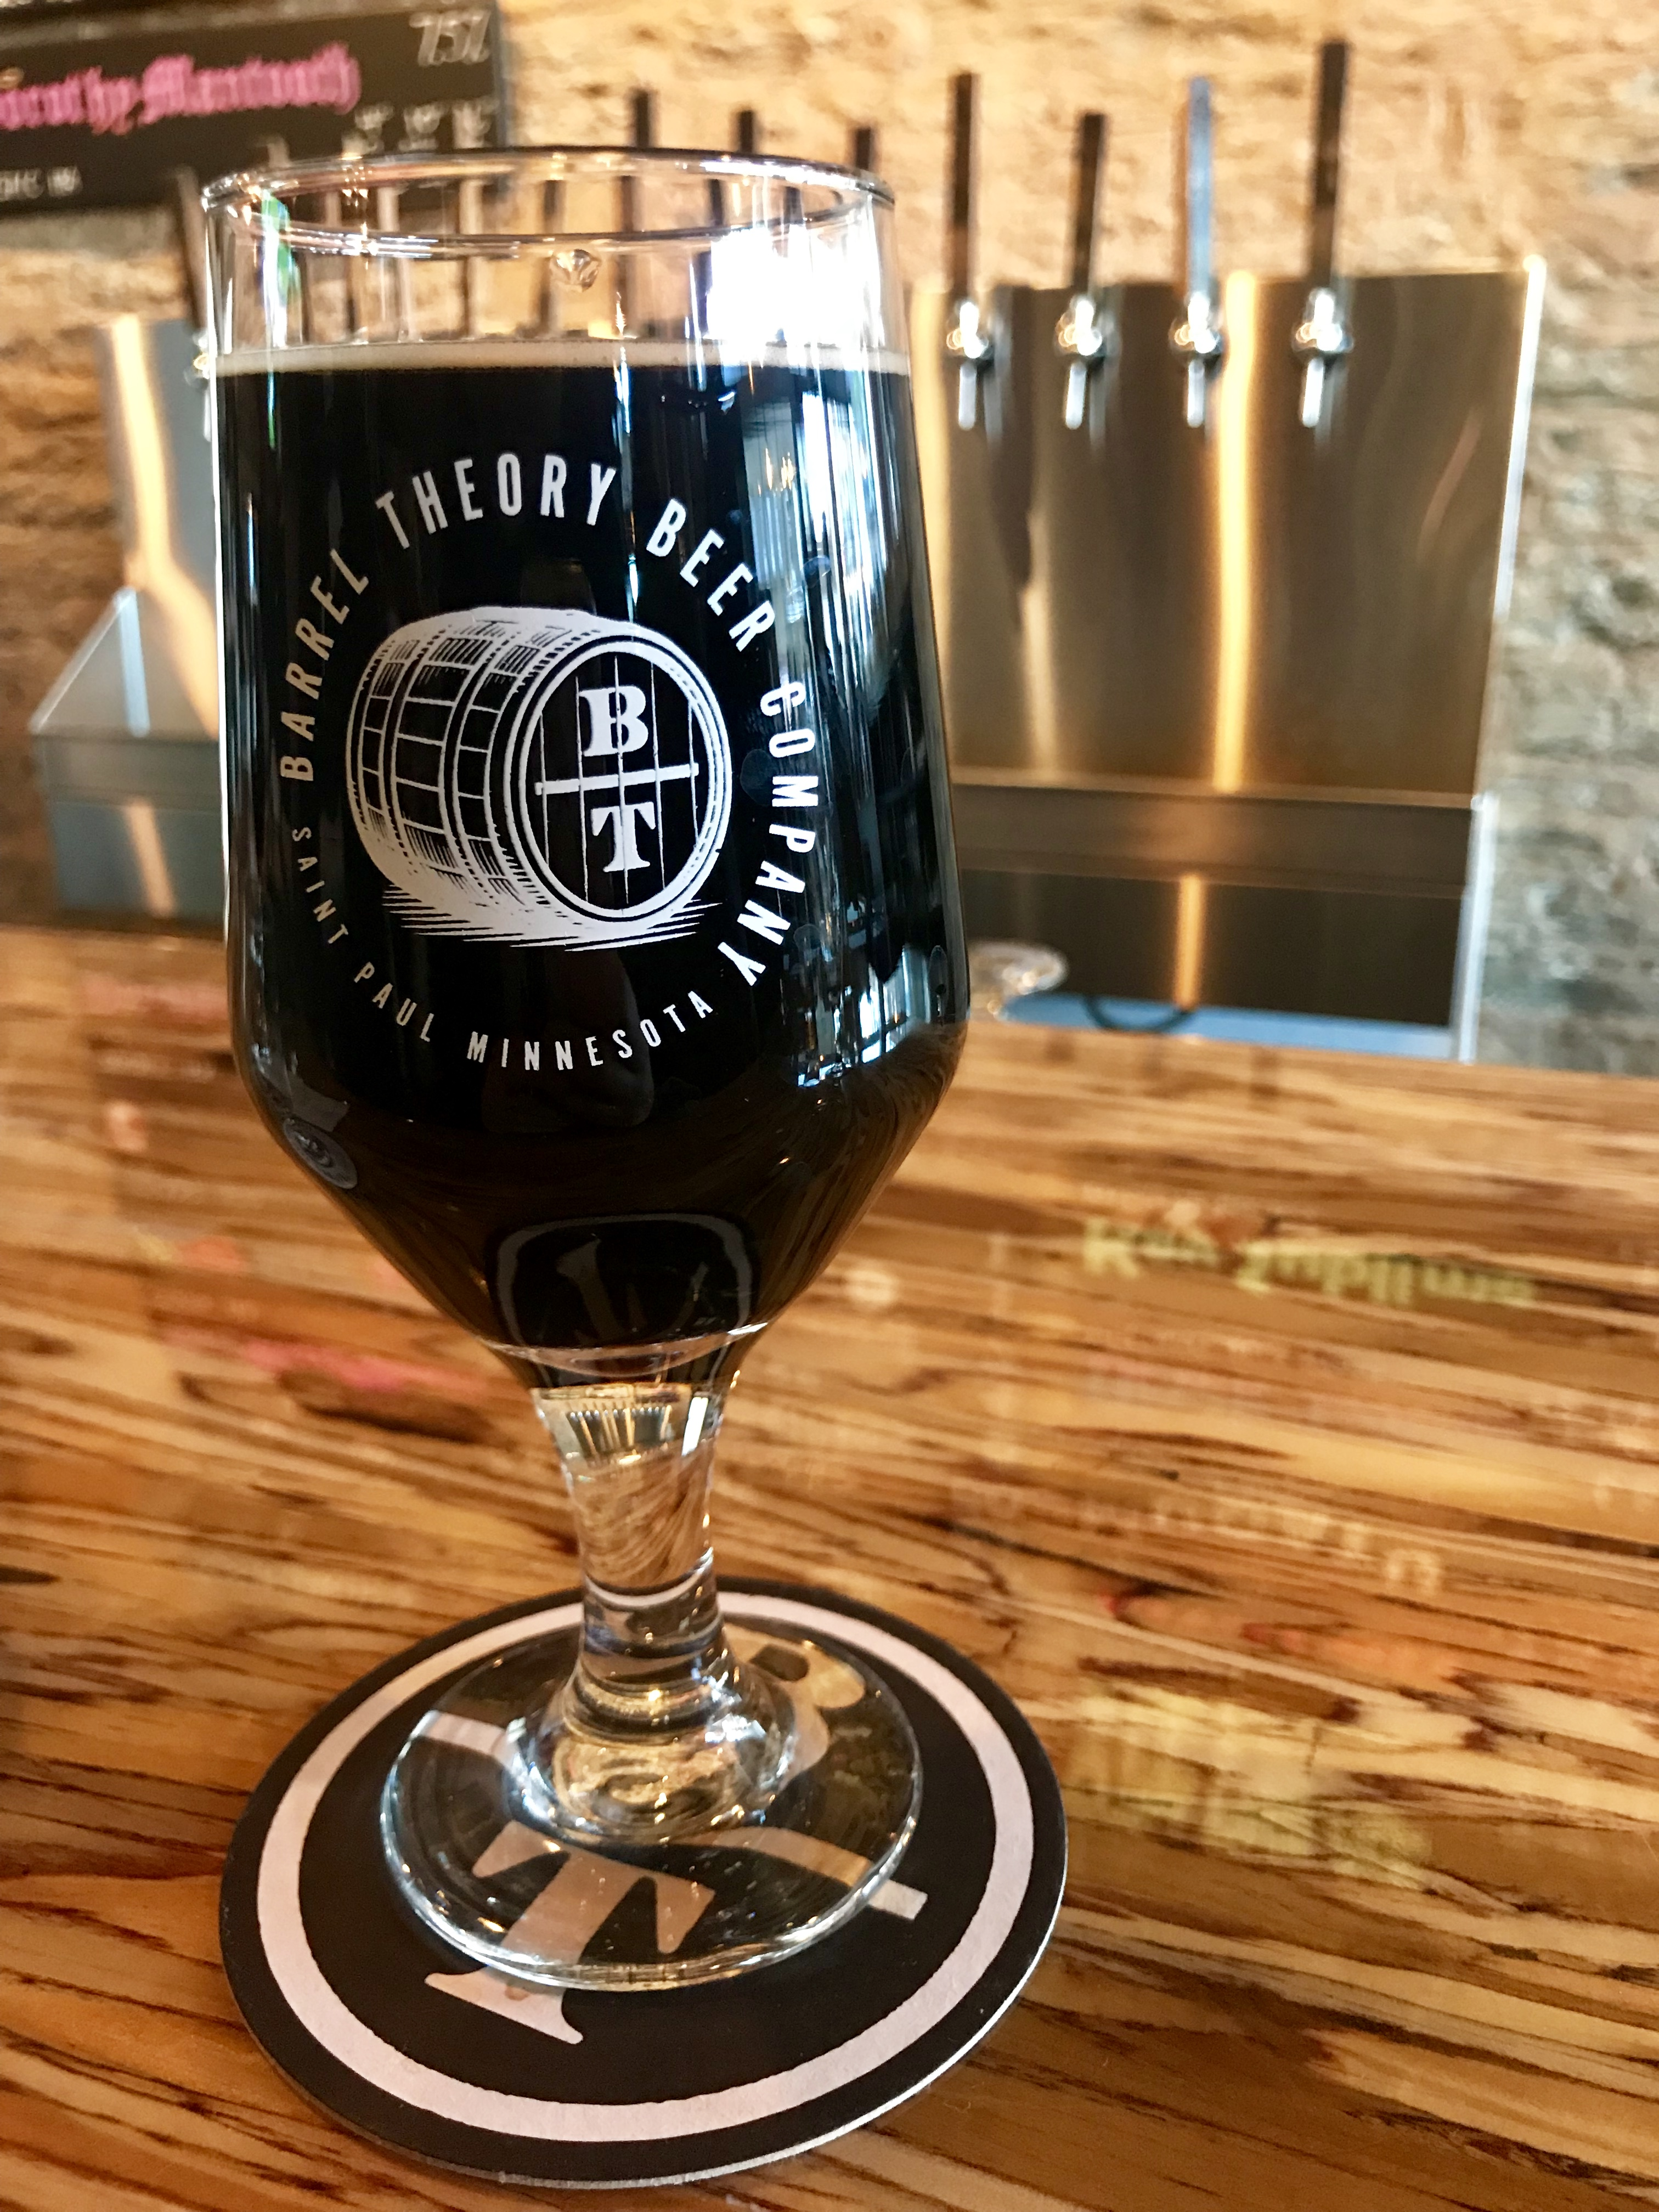 Why You Should Check Out Lowertown's Barrel Theory Beer Company